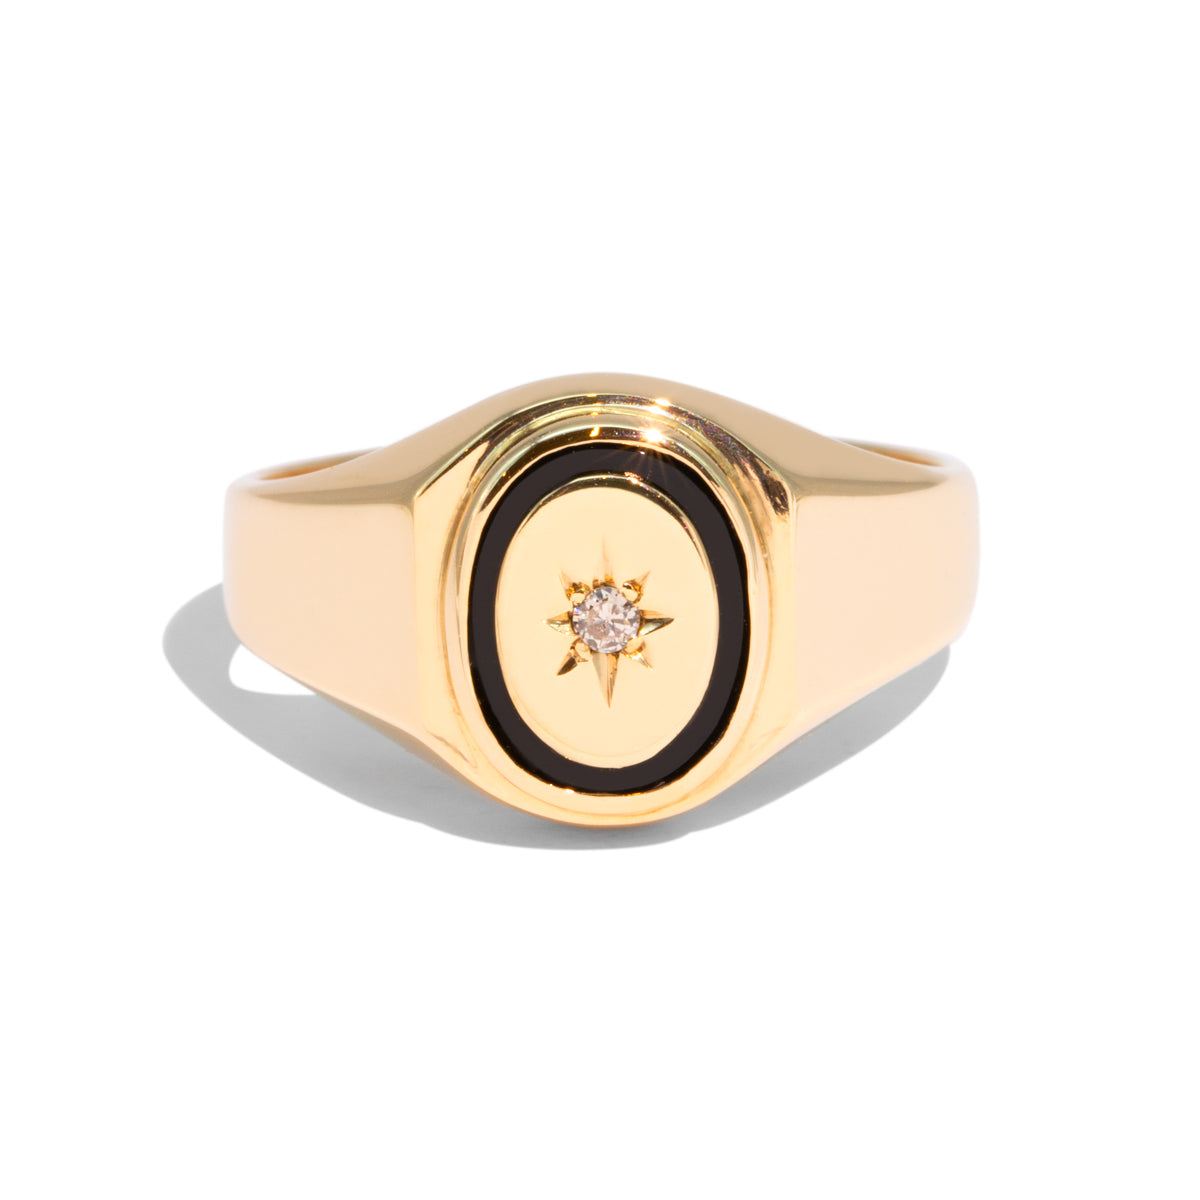 The Billie Vintage Diamond Signet Ring